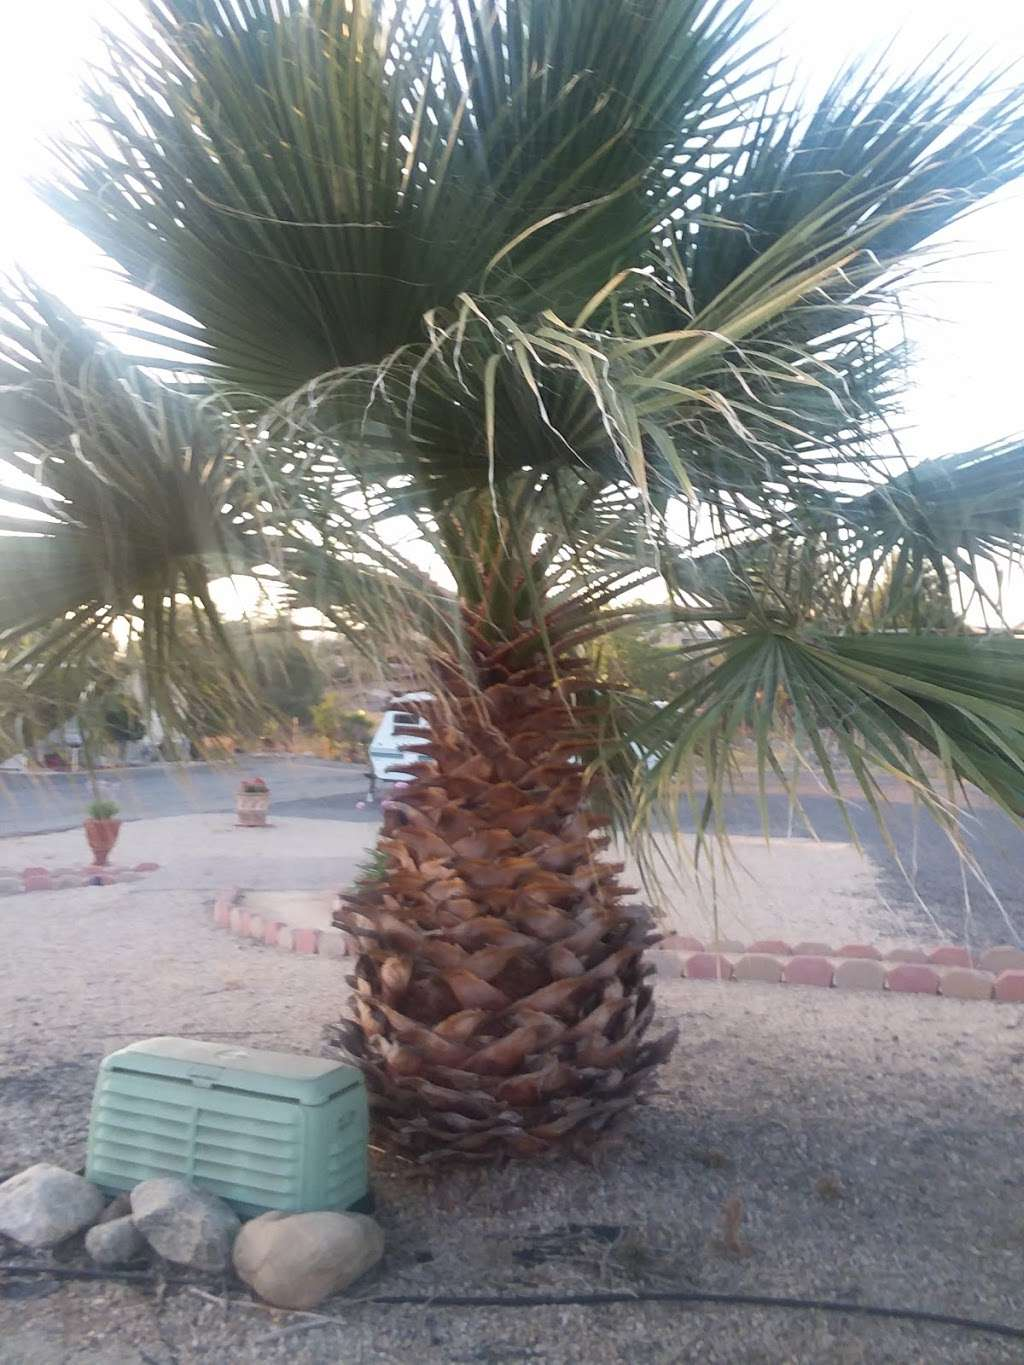 Valley View Mobile Home Park - rv park  | Photo 9 of 10 | Address: 12995 6th St, Yucaipa, CA 92399, USA | Phone: (909) 795-2118